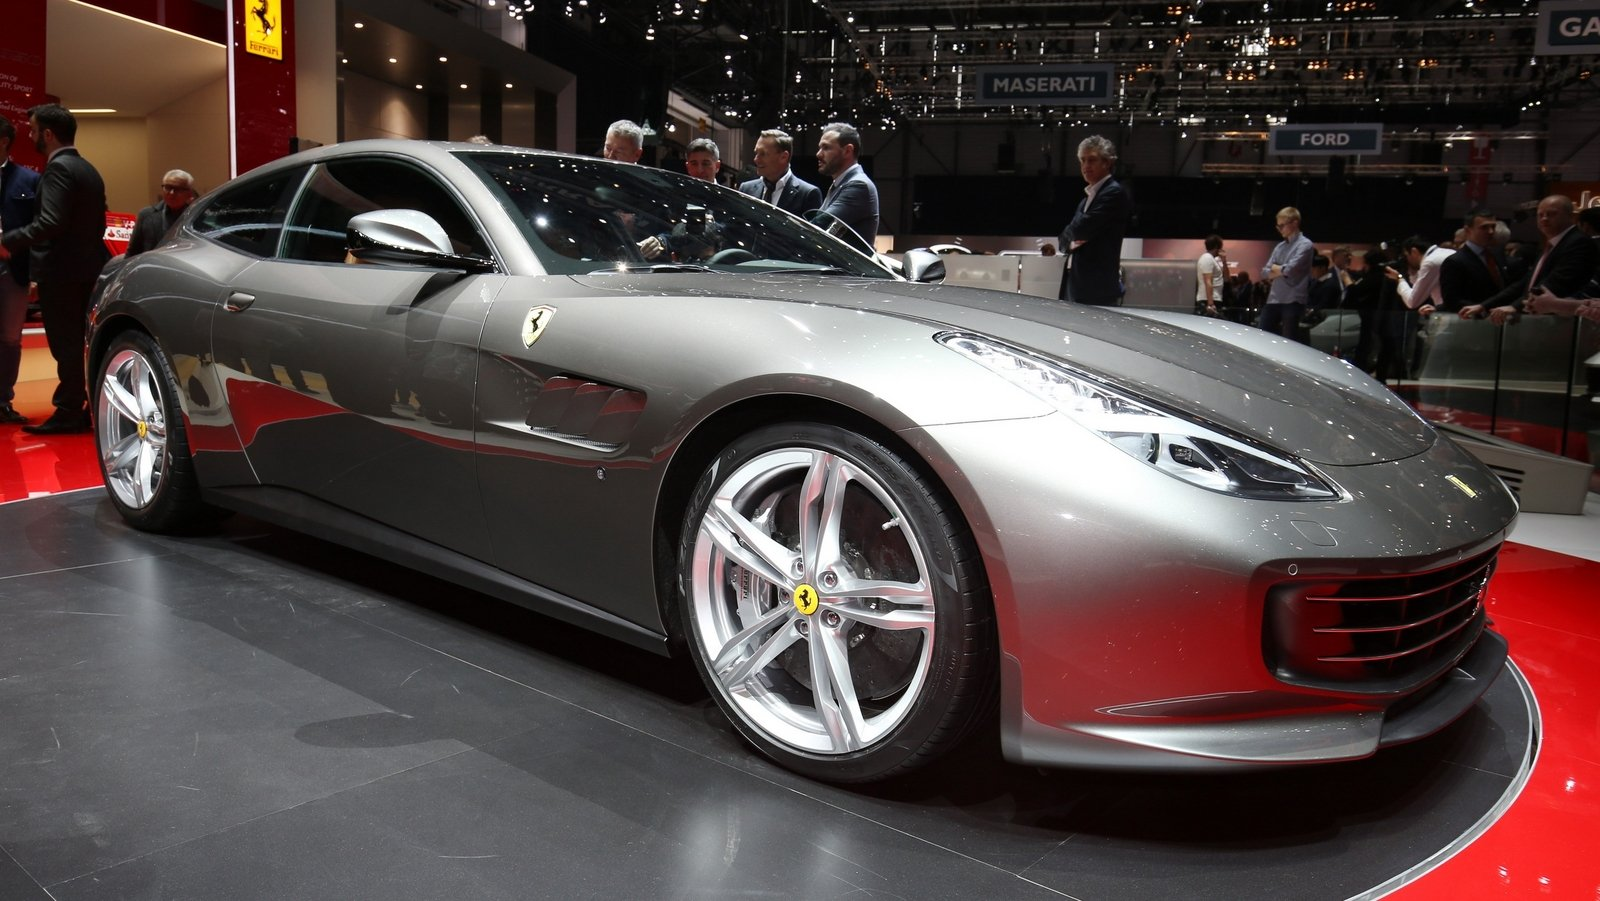 2016 ferrari gtc4lusso review top speed. Black Bedroom Furniture Sets. Home Design Ideas